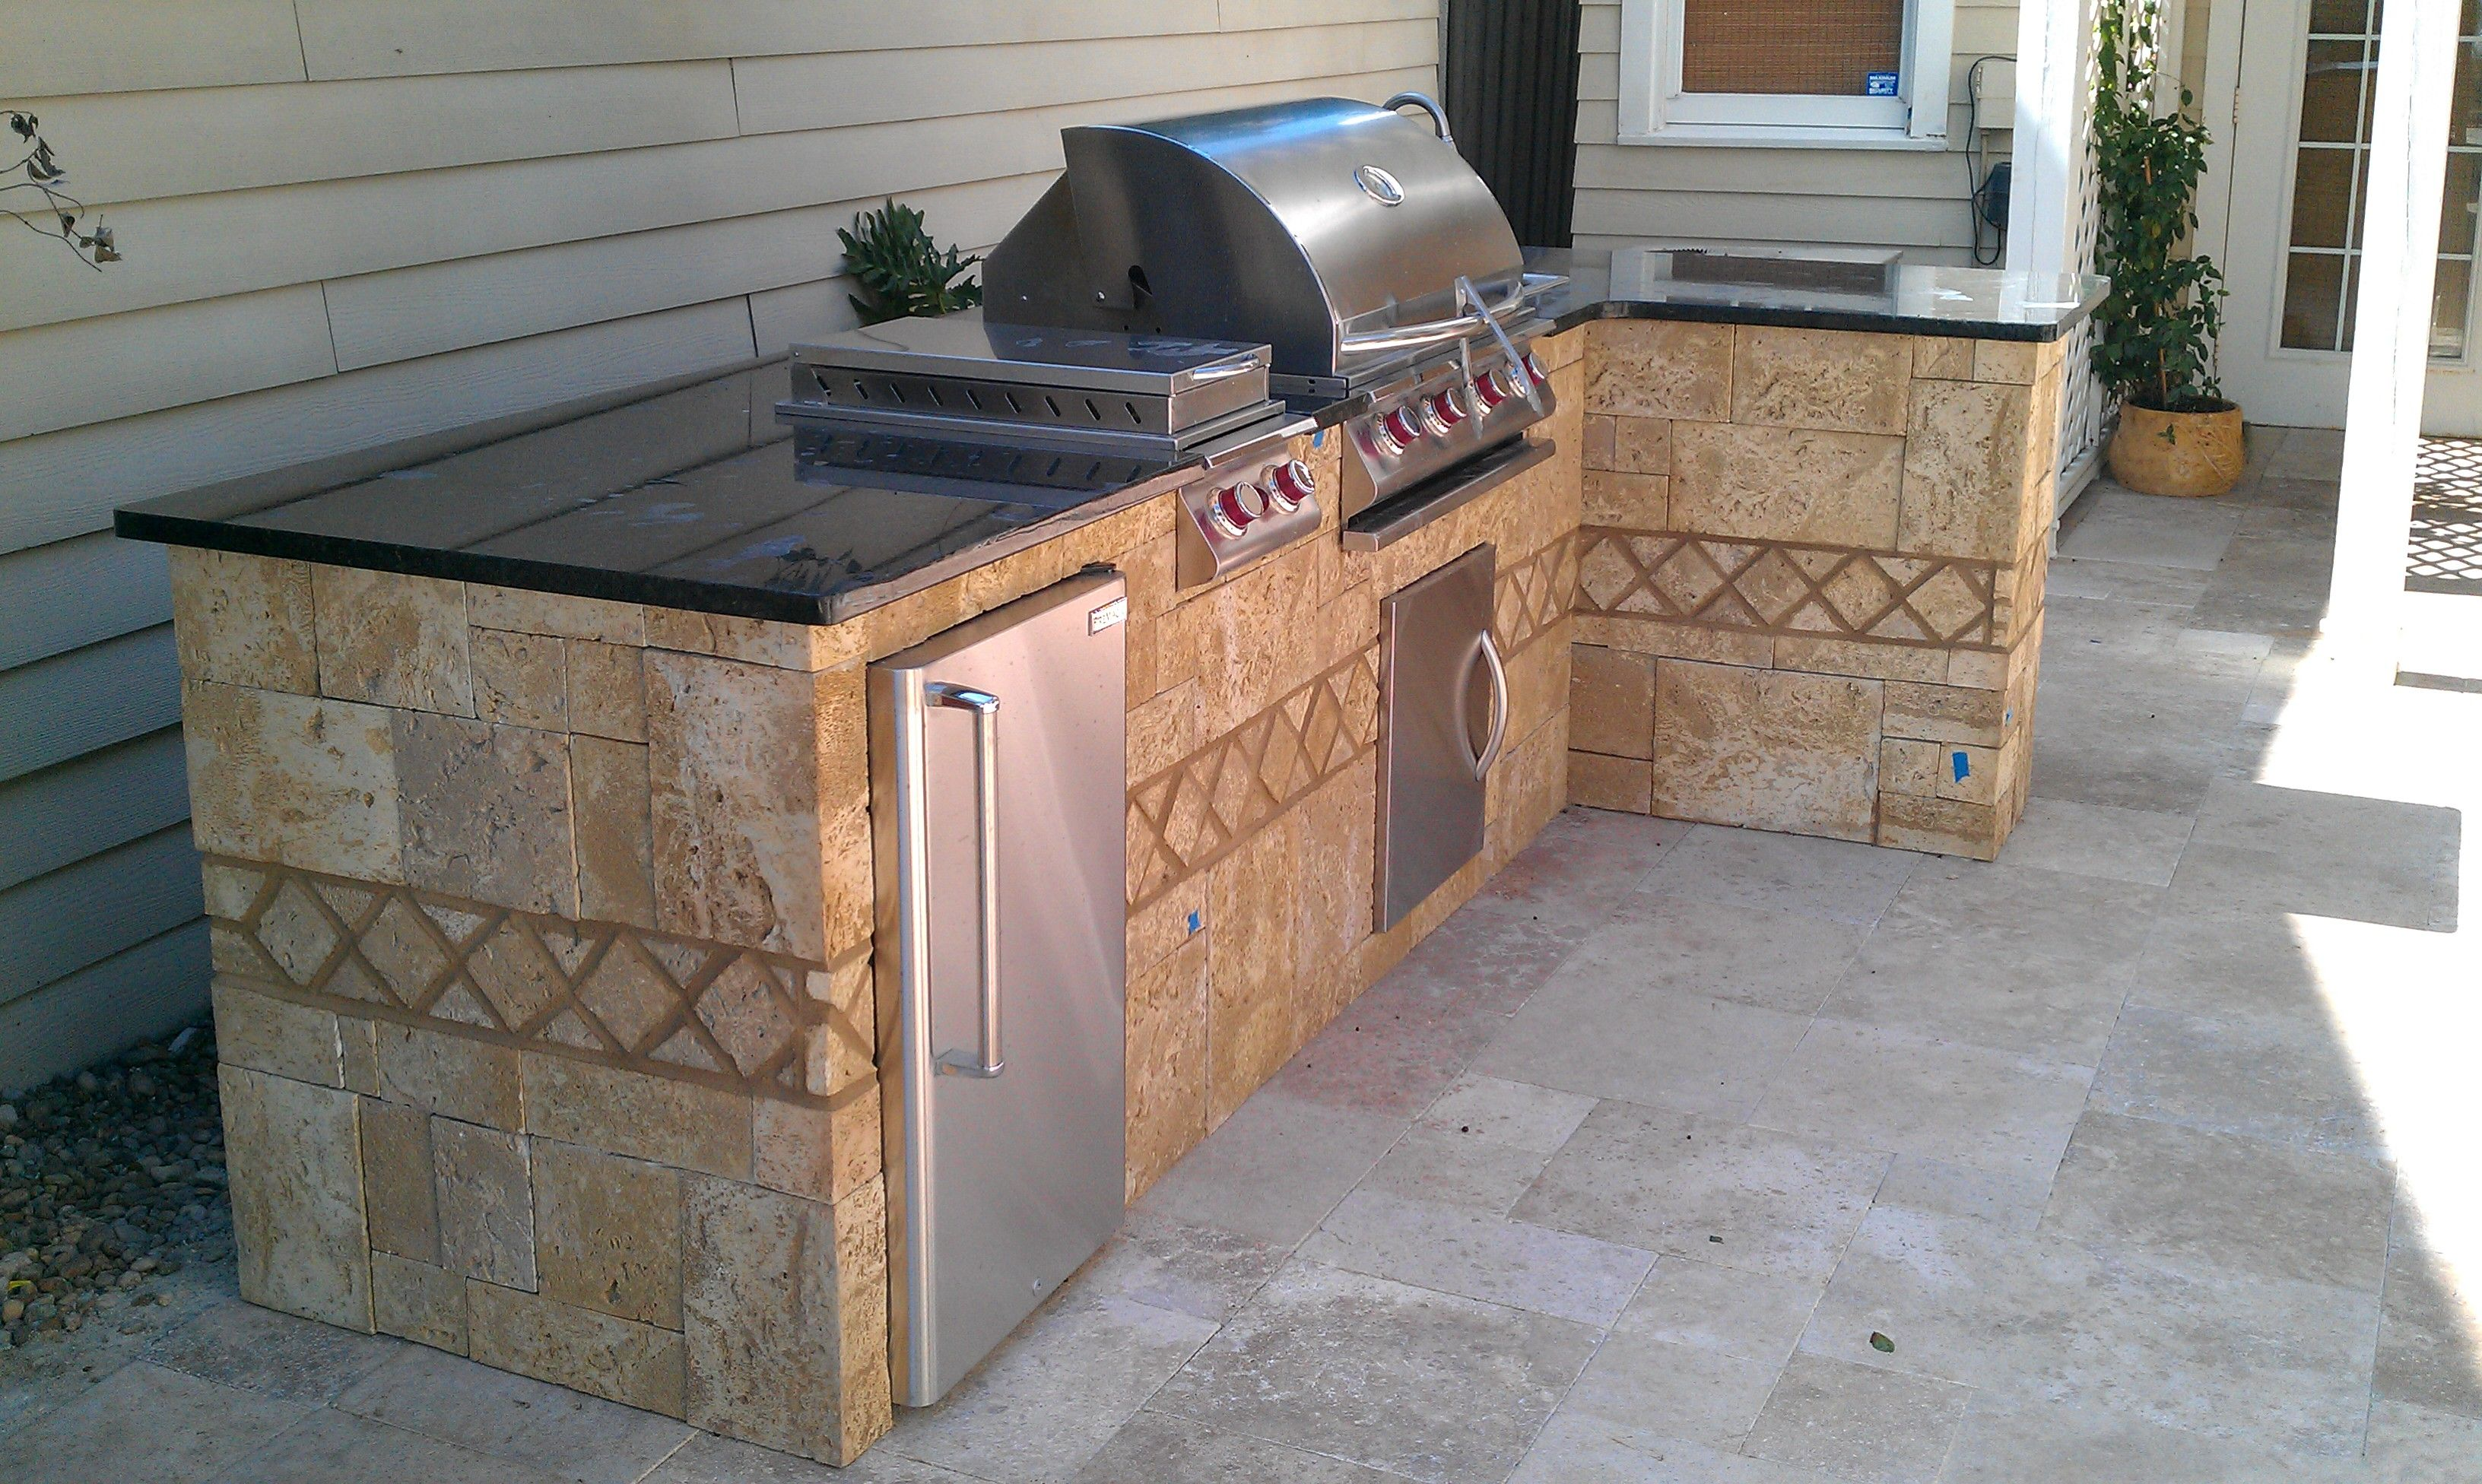 Outdoor Kitchen On Travertine Patio With Granite Top And Stainless Inserts Grill Ice Bin Refrigerat Outdoor Kitchen Design Travertine Patio Outdoor Kitchen